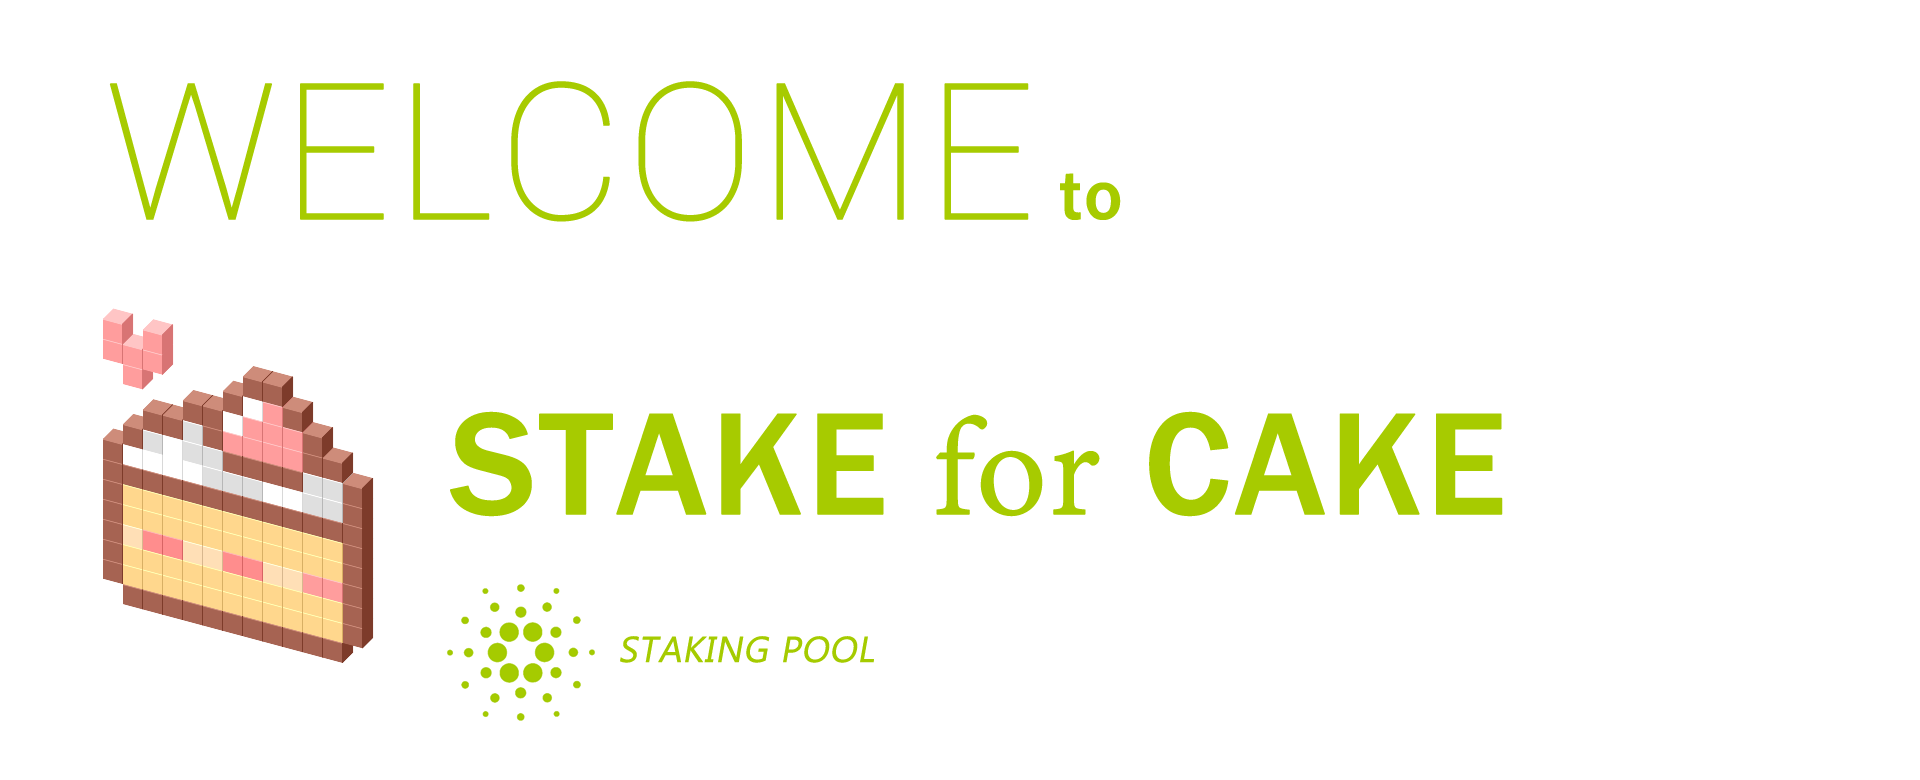 Stake for CAKE welcome header